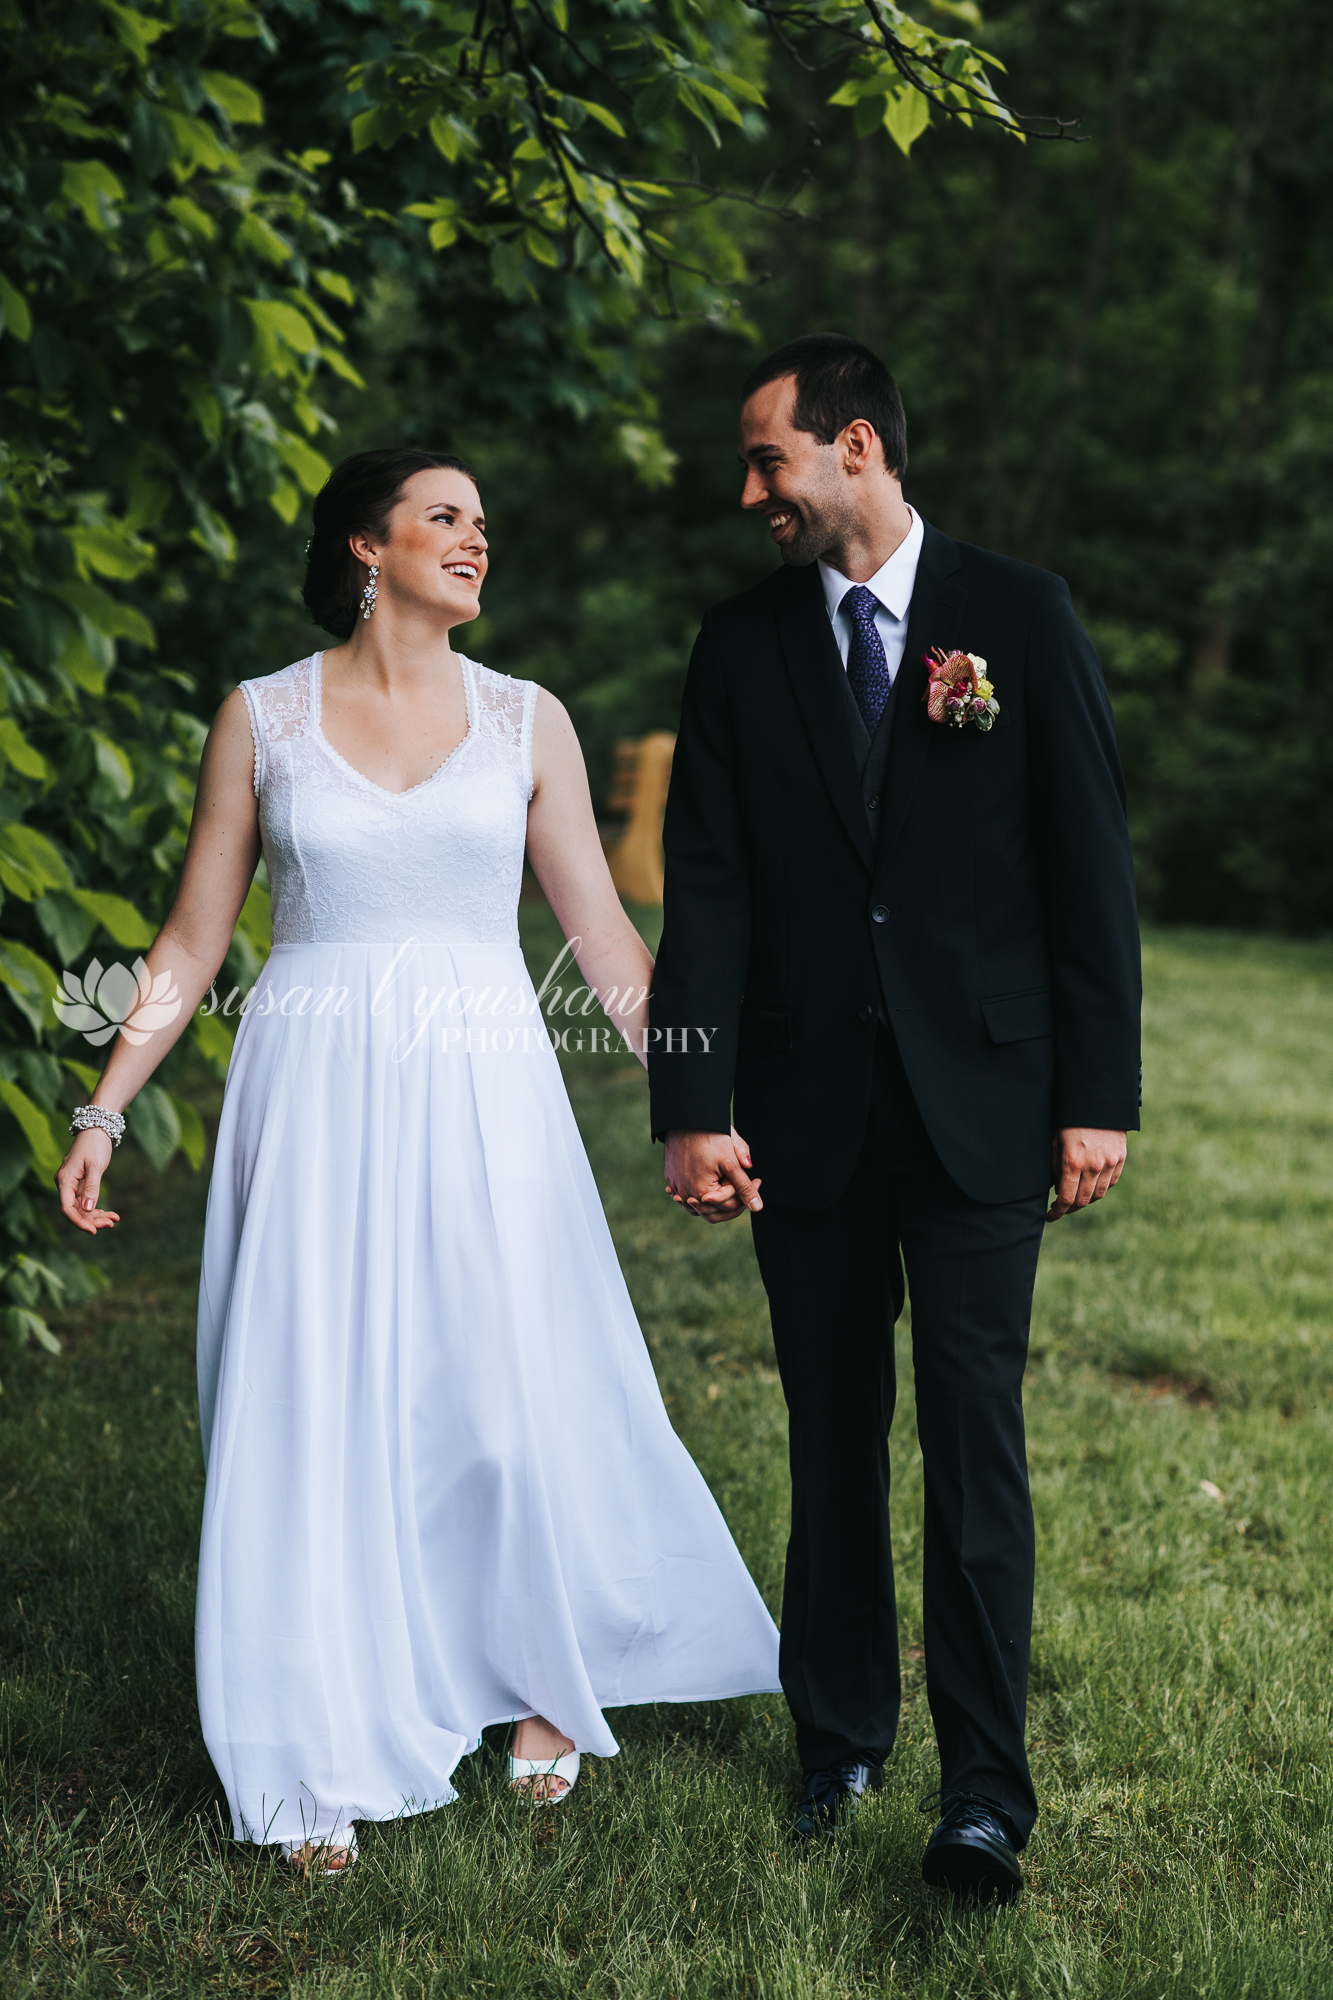 Adena and  Erik Wedding 05-17-2019 SLY Photography-29.jpg